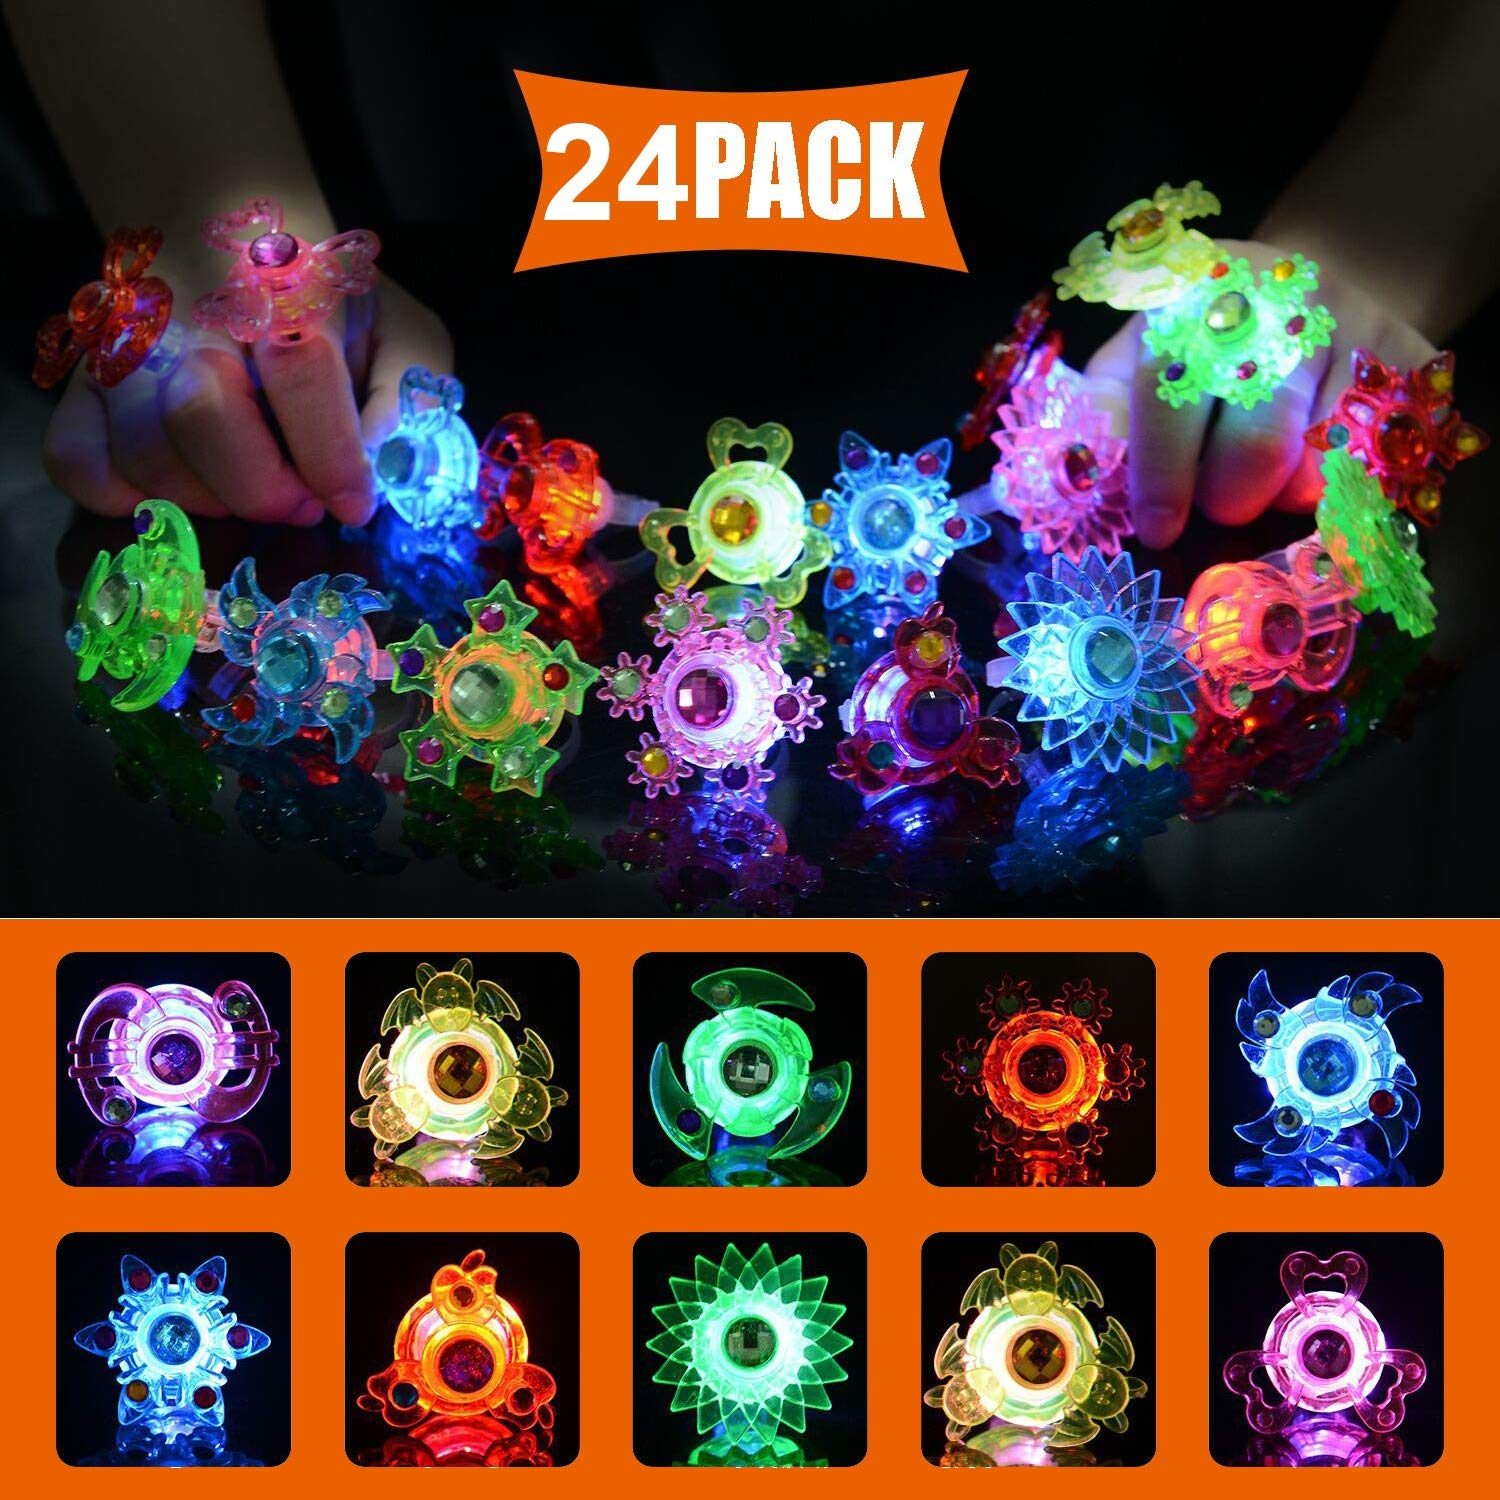 Glory Island Light Up Rings, 24 Pack Party Favors for Kids, Spin Stress Relief Anxiety Toys, Boys and Girls LED Neon Flashing Party Supplies by Glory Island